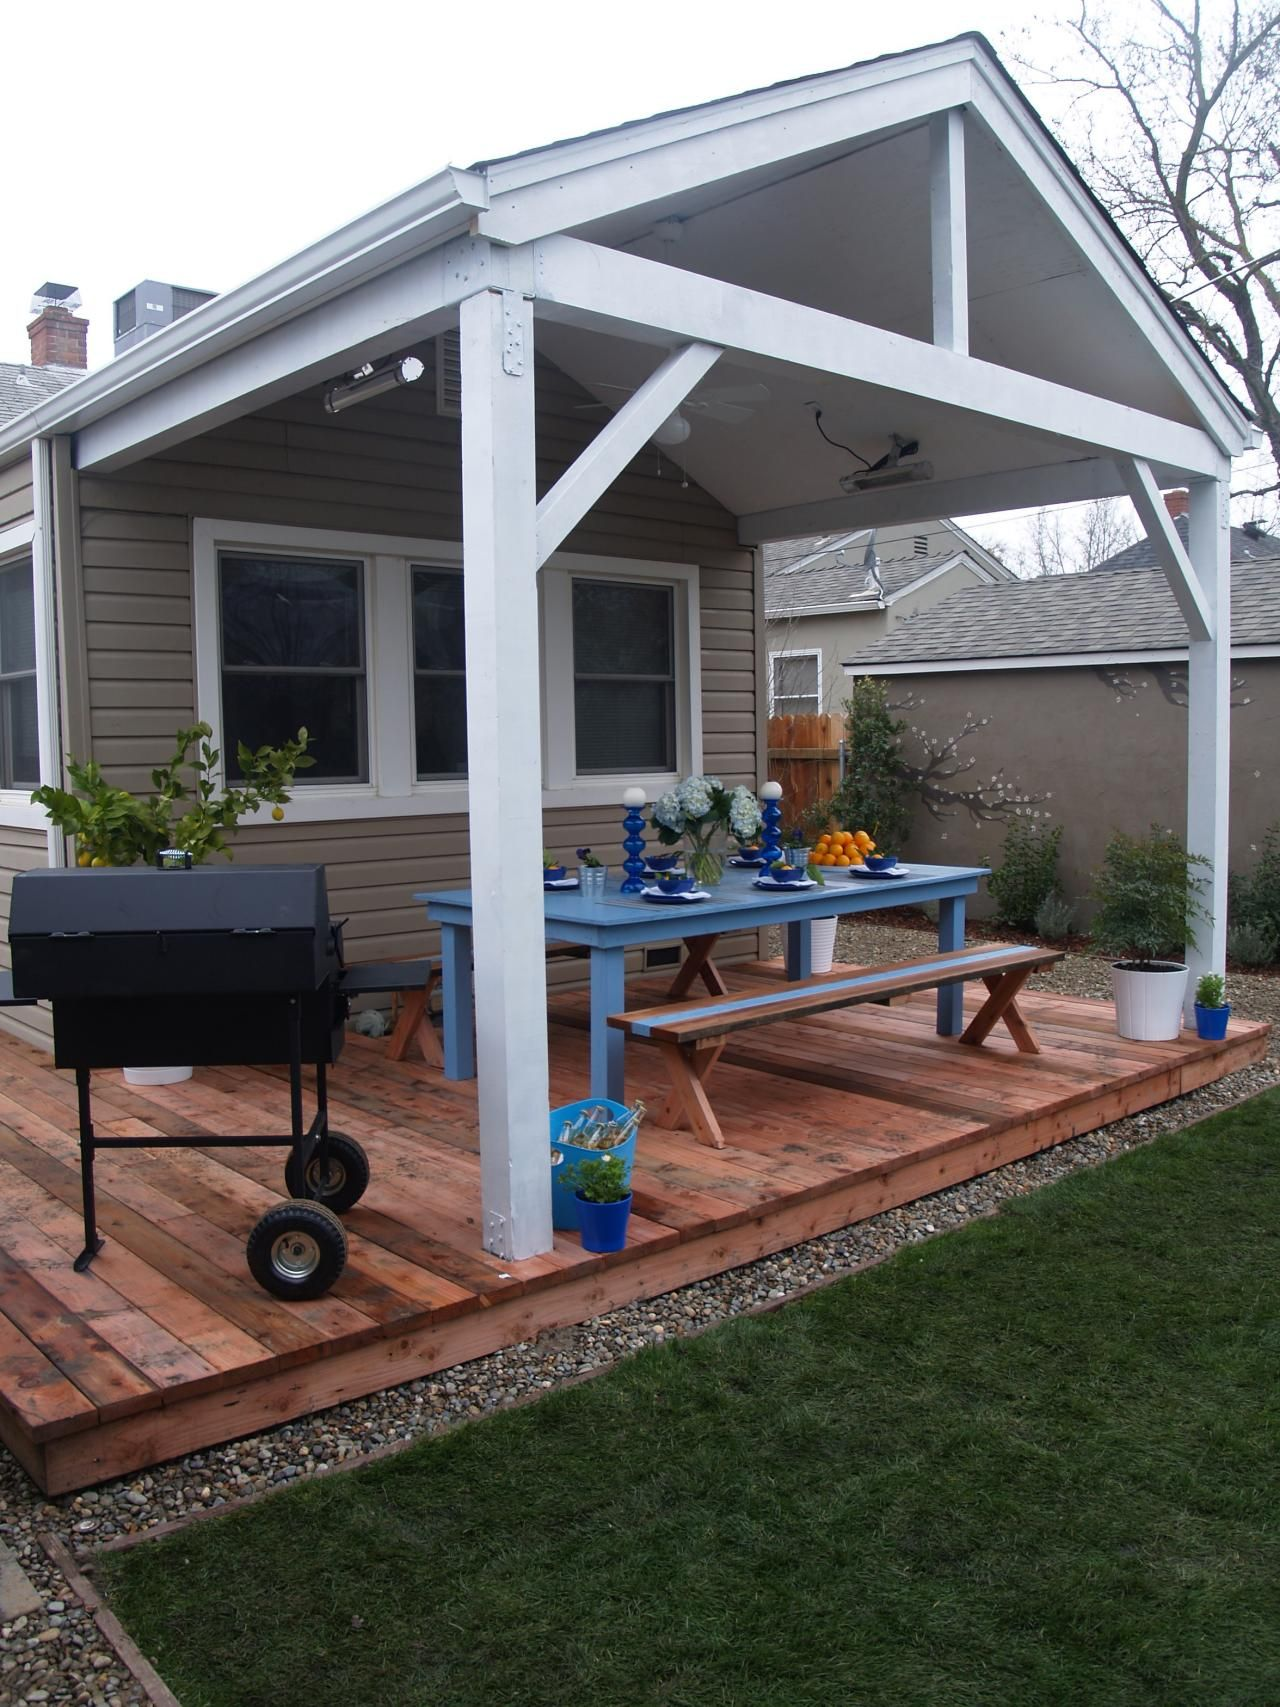 Beautiful Decks Designed By Diy Network Experts Patio Design